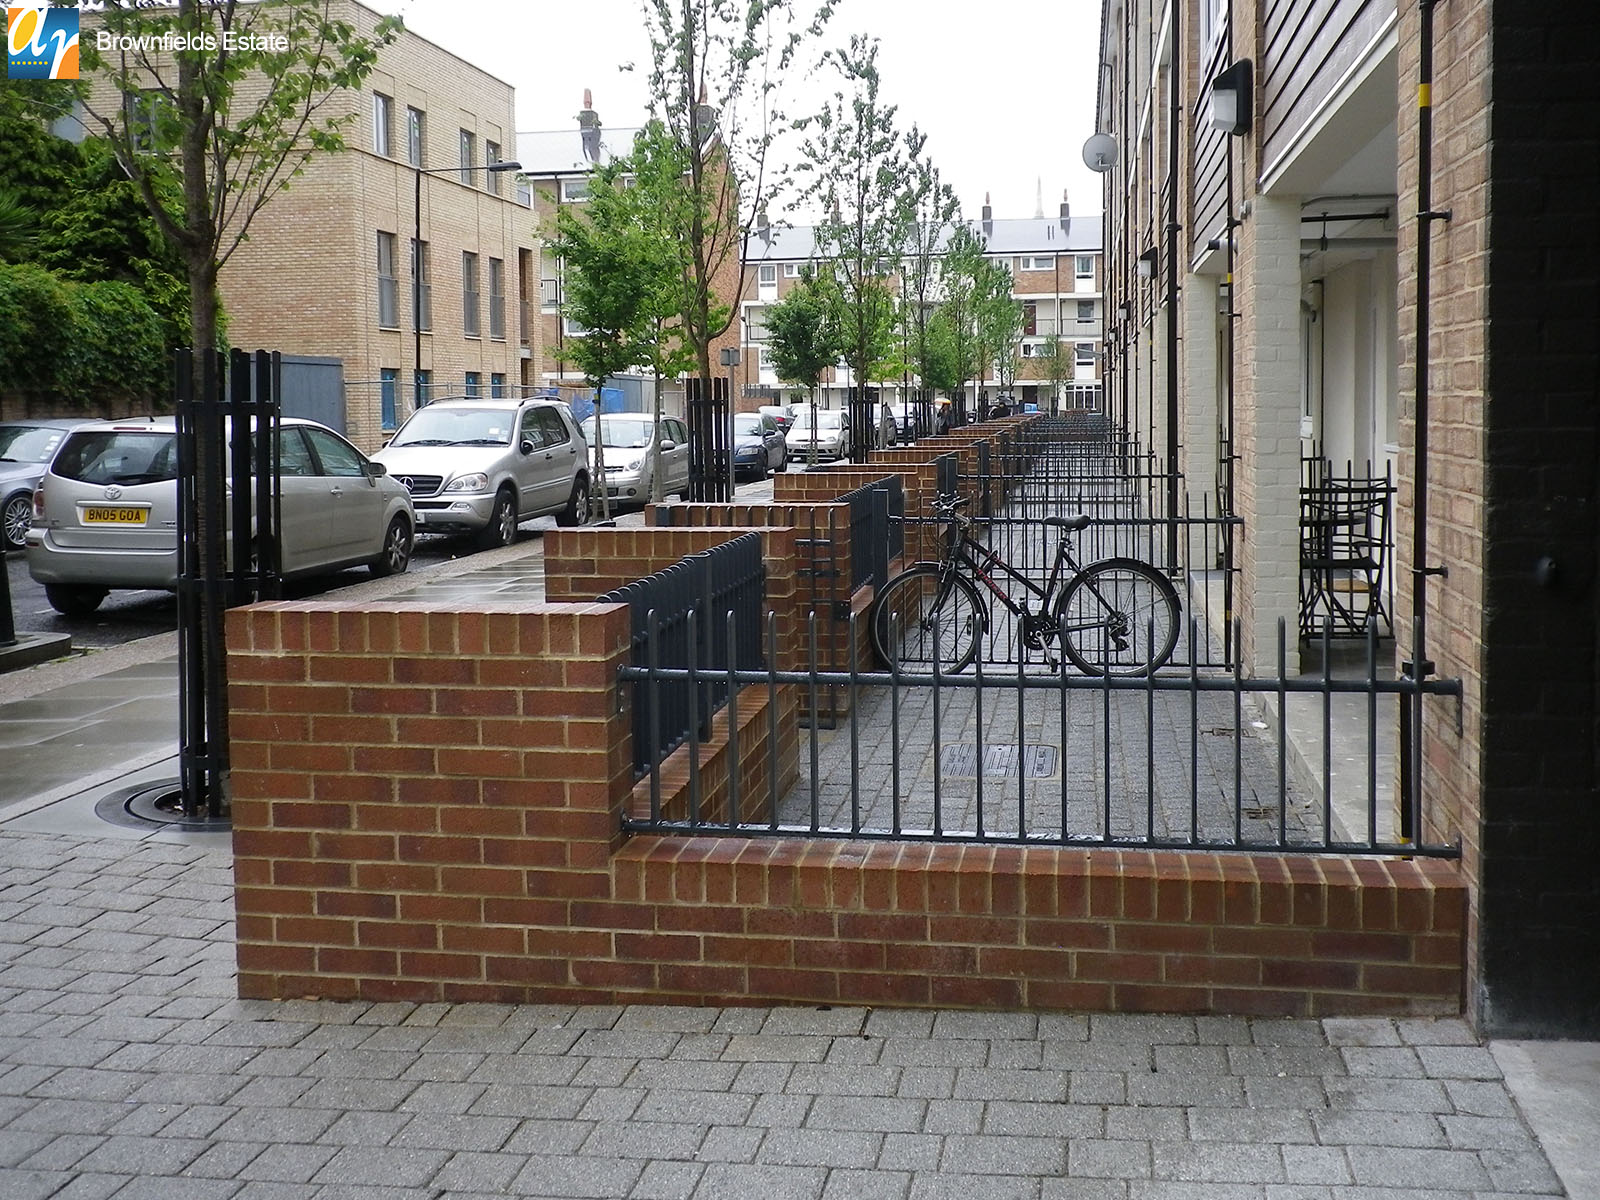 Brownfields estate flat bar infill railings